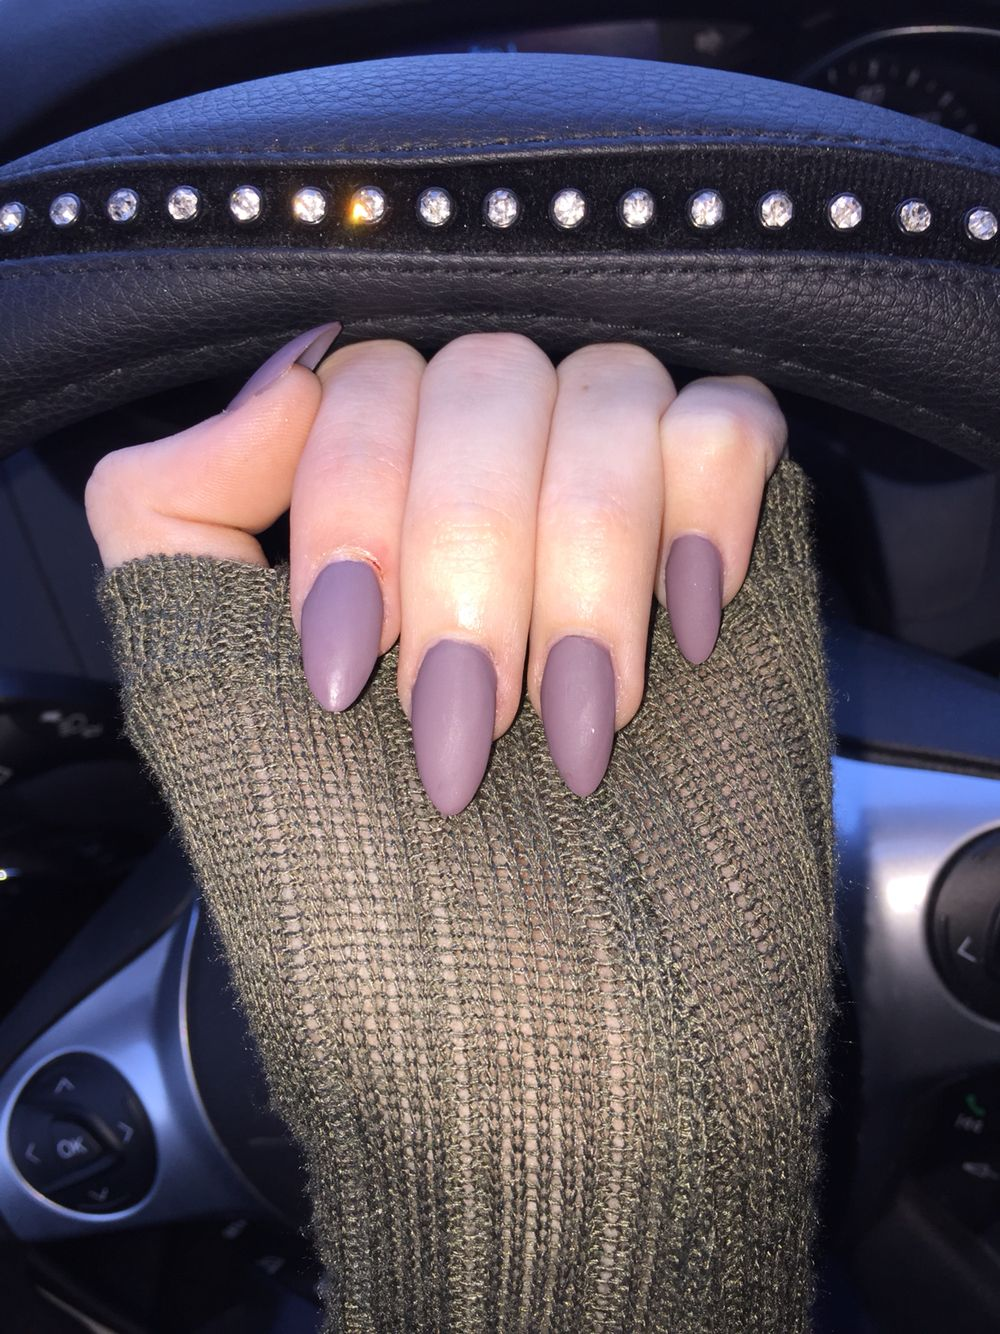 Matte mauve/purple stiletto nails. Perfect for fall! | Nails ...